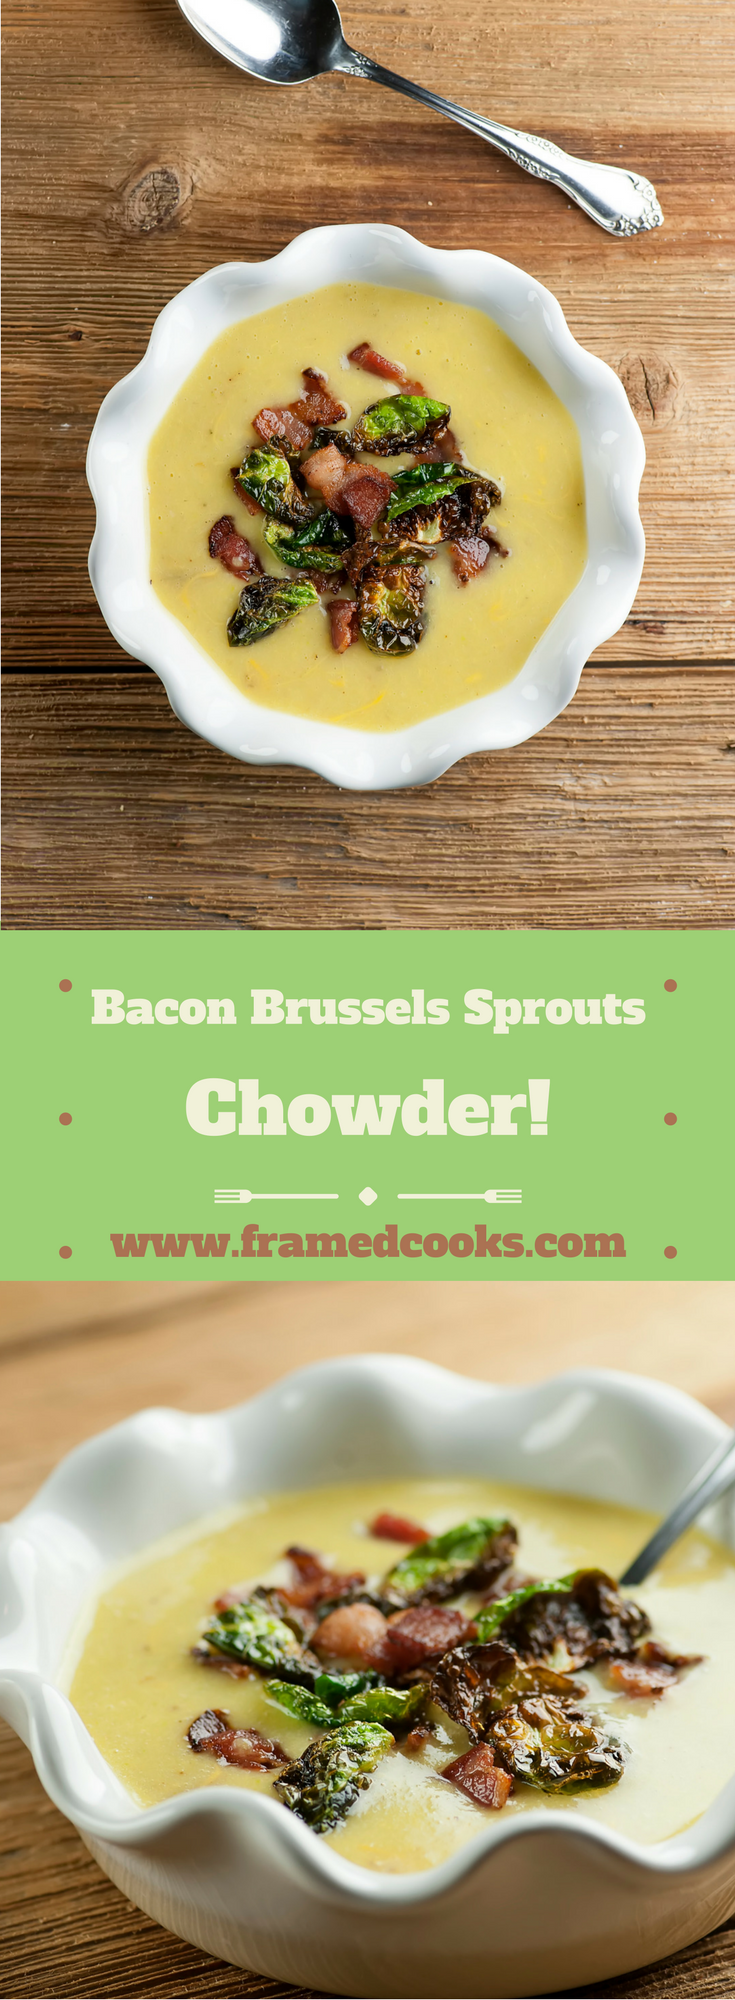 Win over all the skeptics with this recipe for hearty bacon Brussels sprouts chowder!